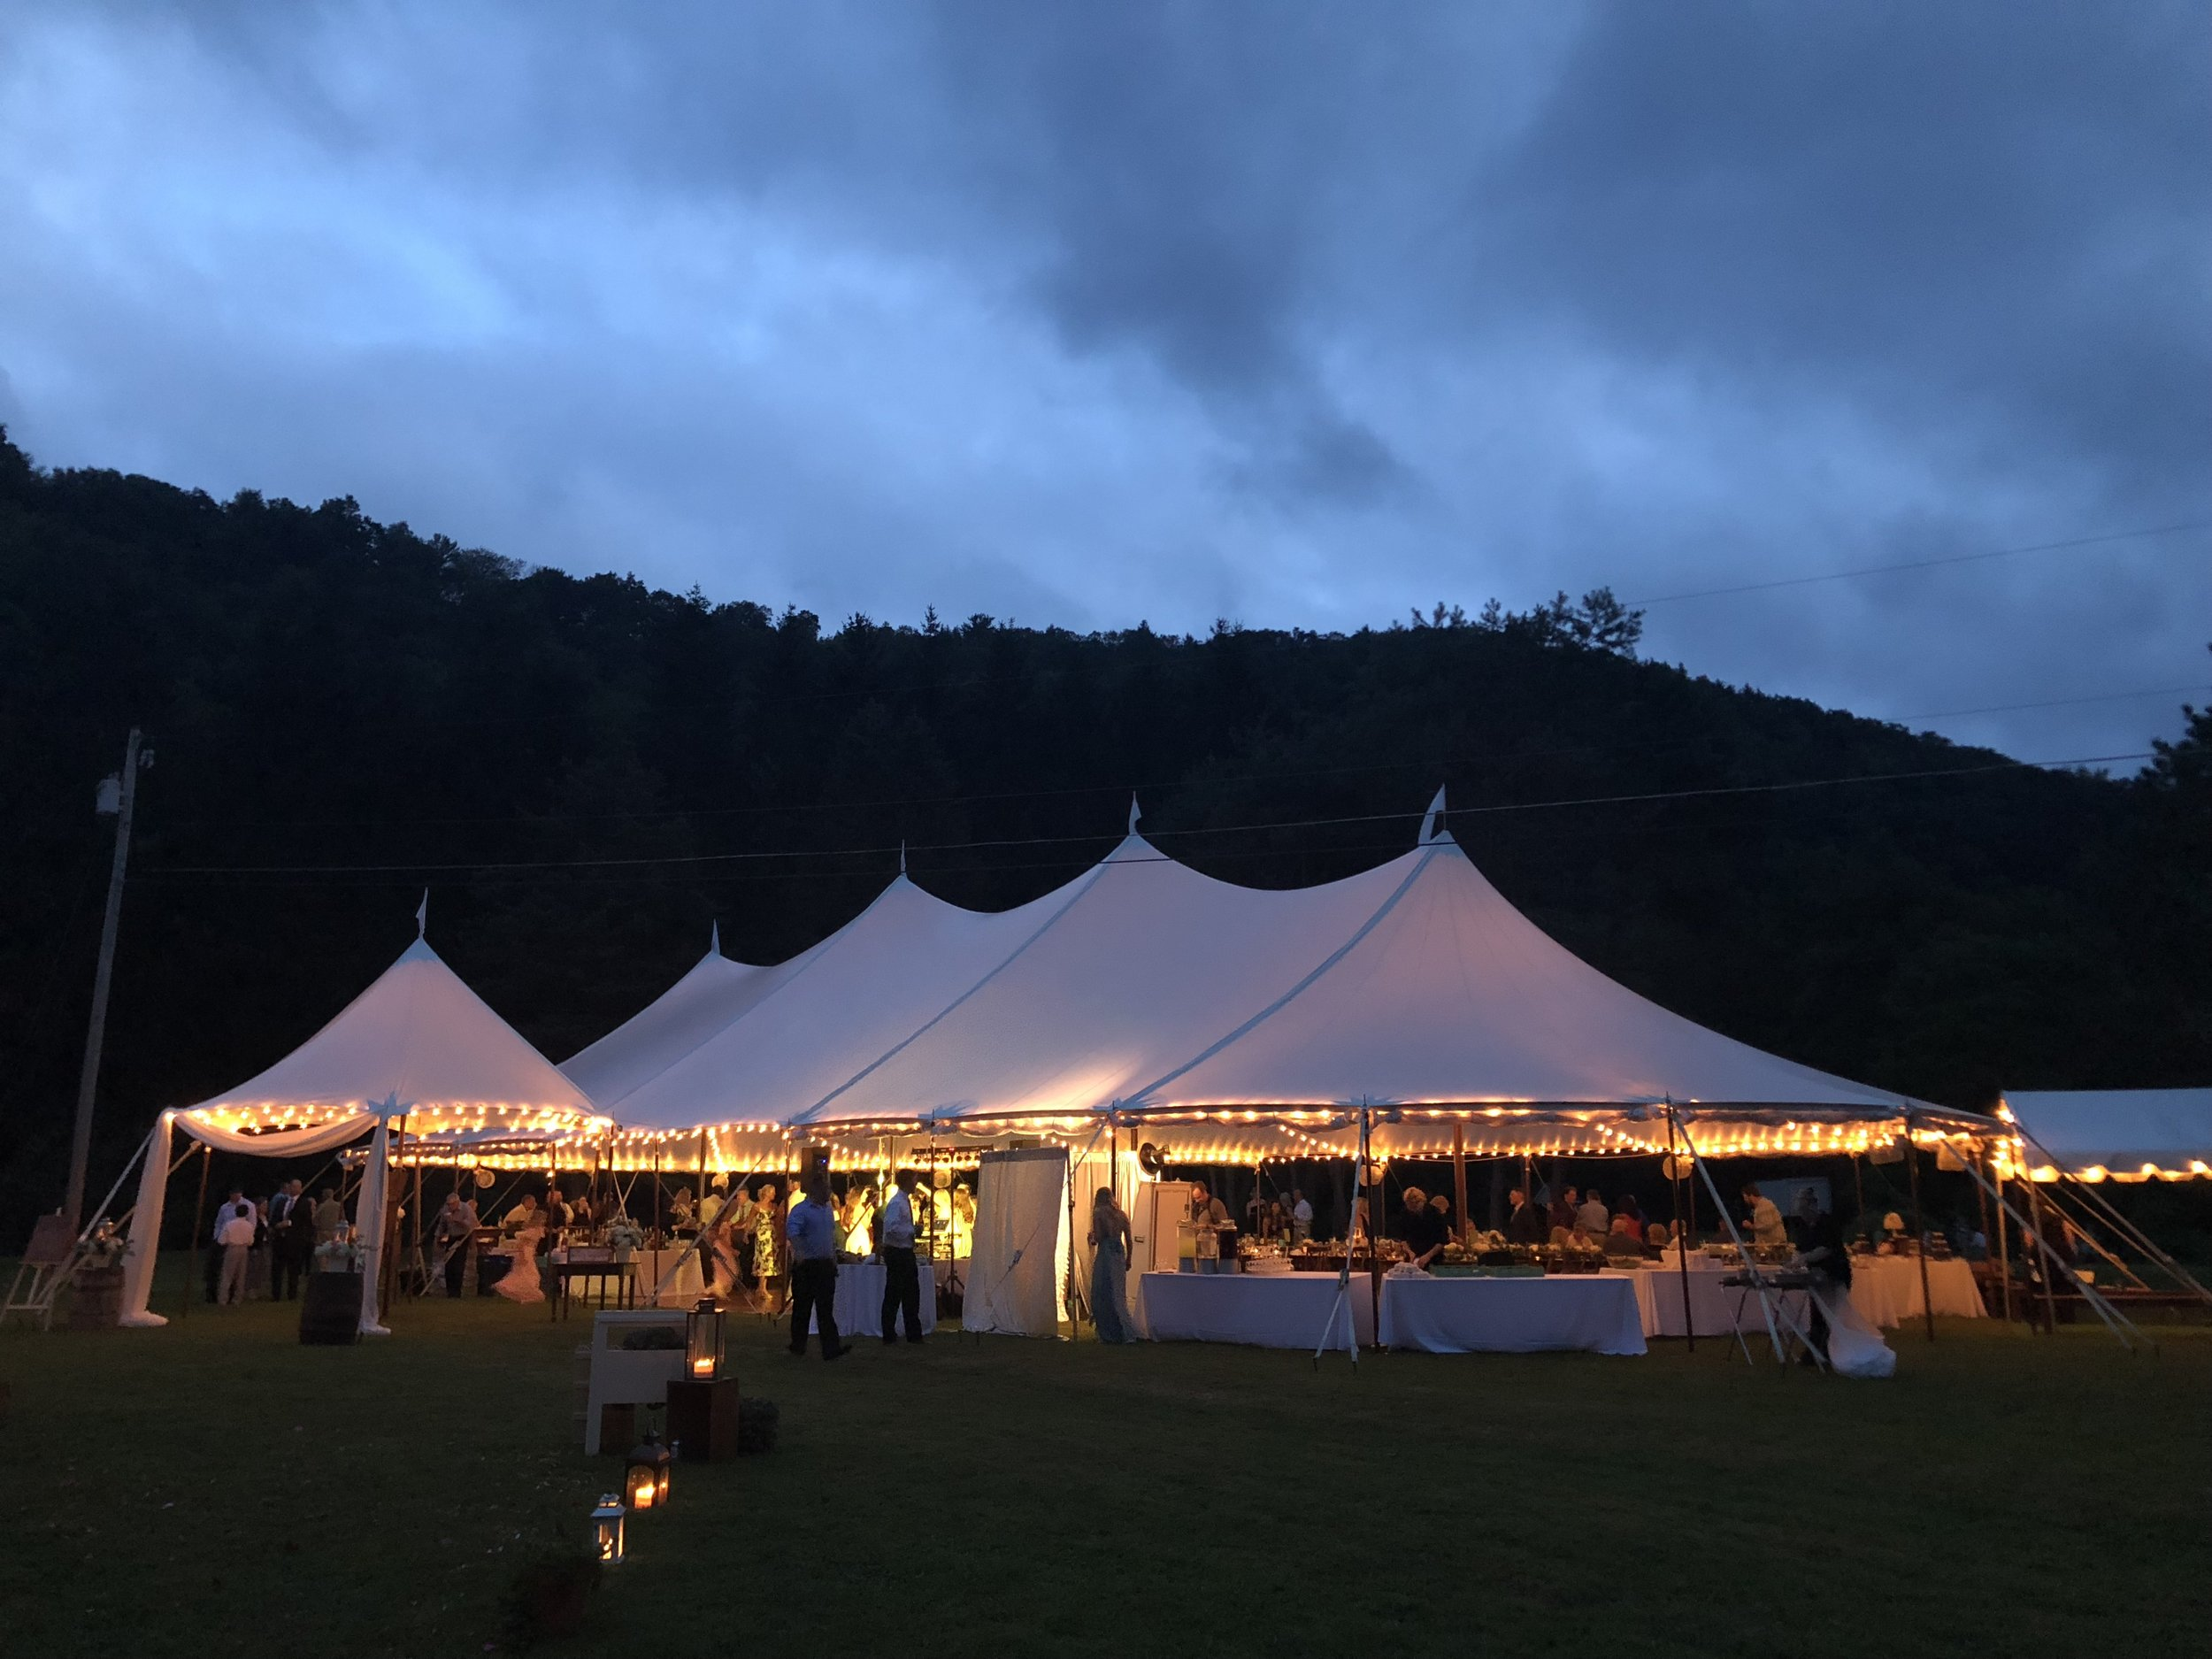 Evening romantic, rustic wedding in a sailcloth tent